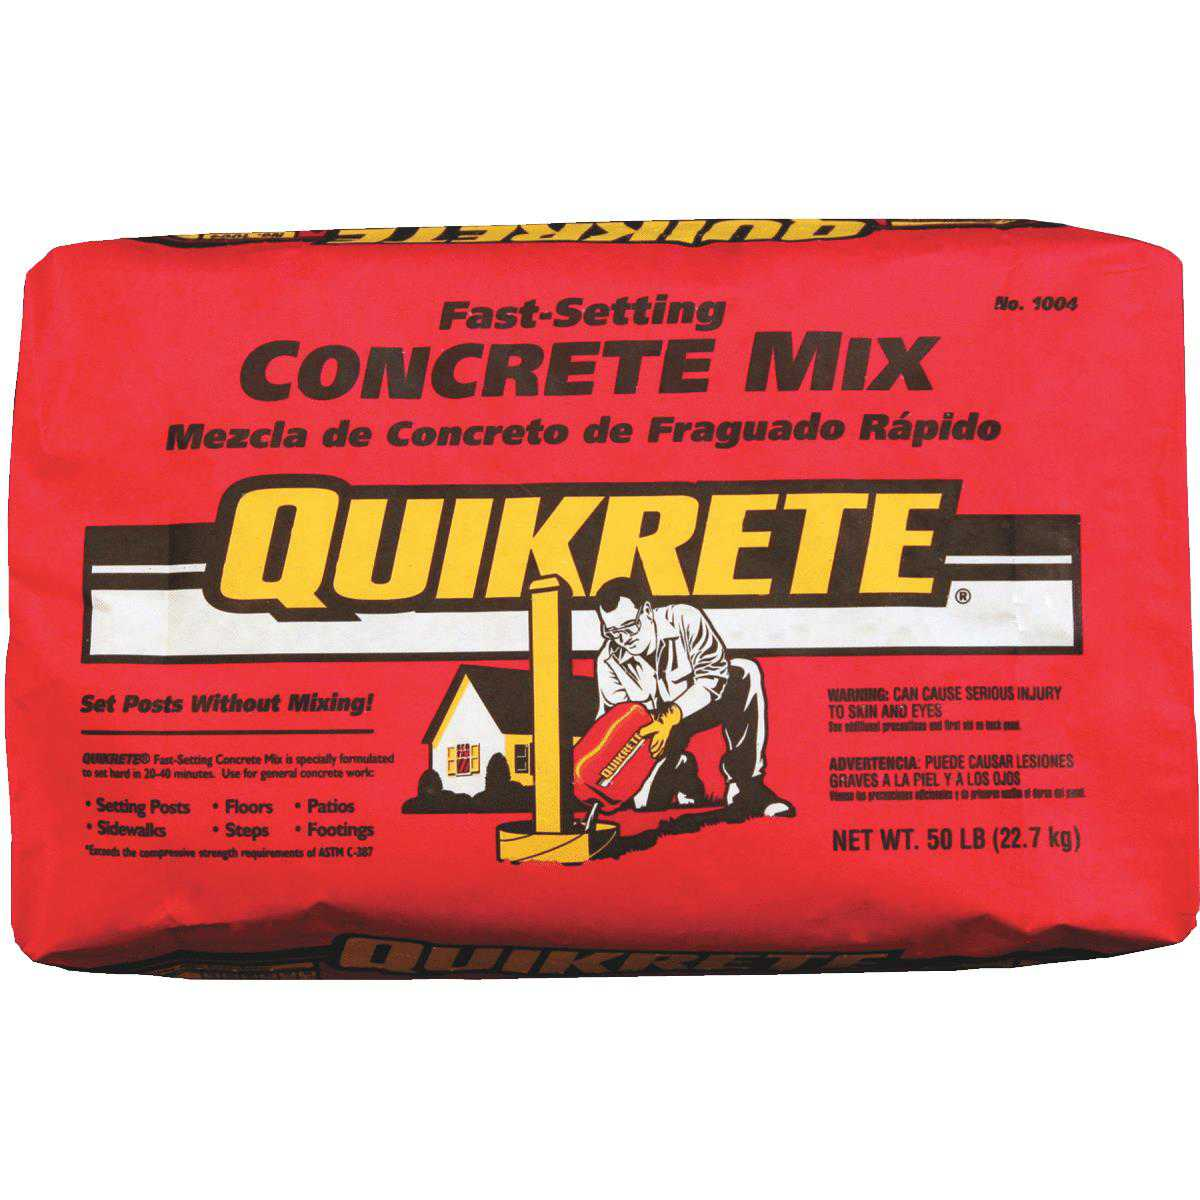 Quickrete Fast-Setting Concrete Mix